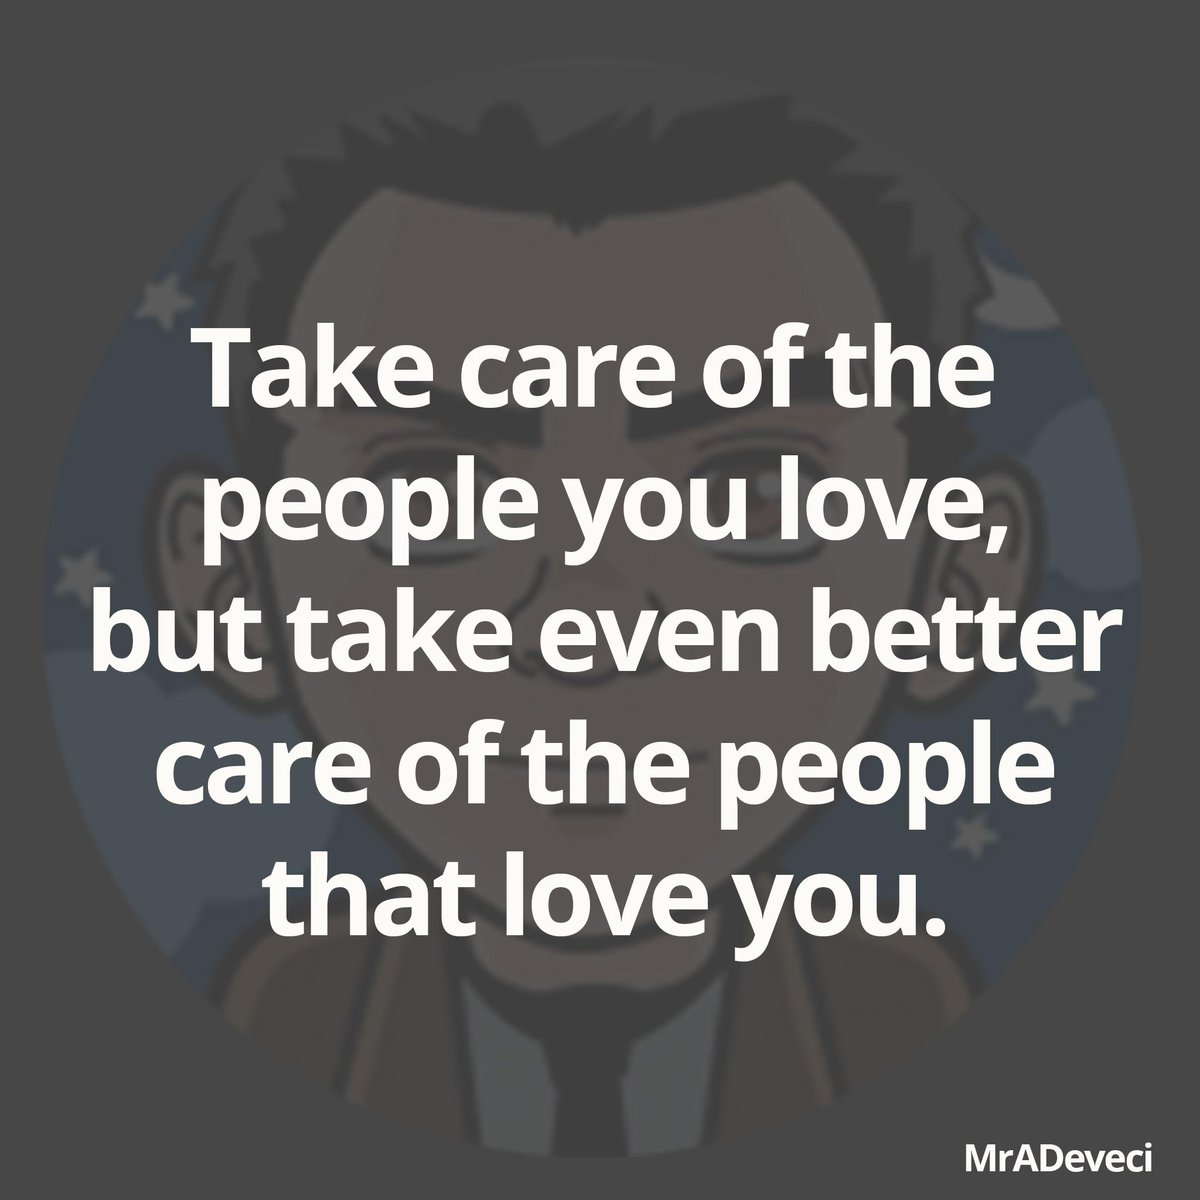 Ahmet Deveci On Twitter Take Care Of The People You Love But